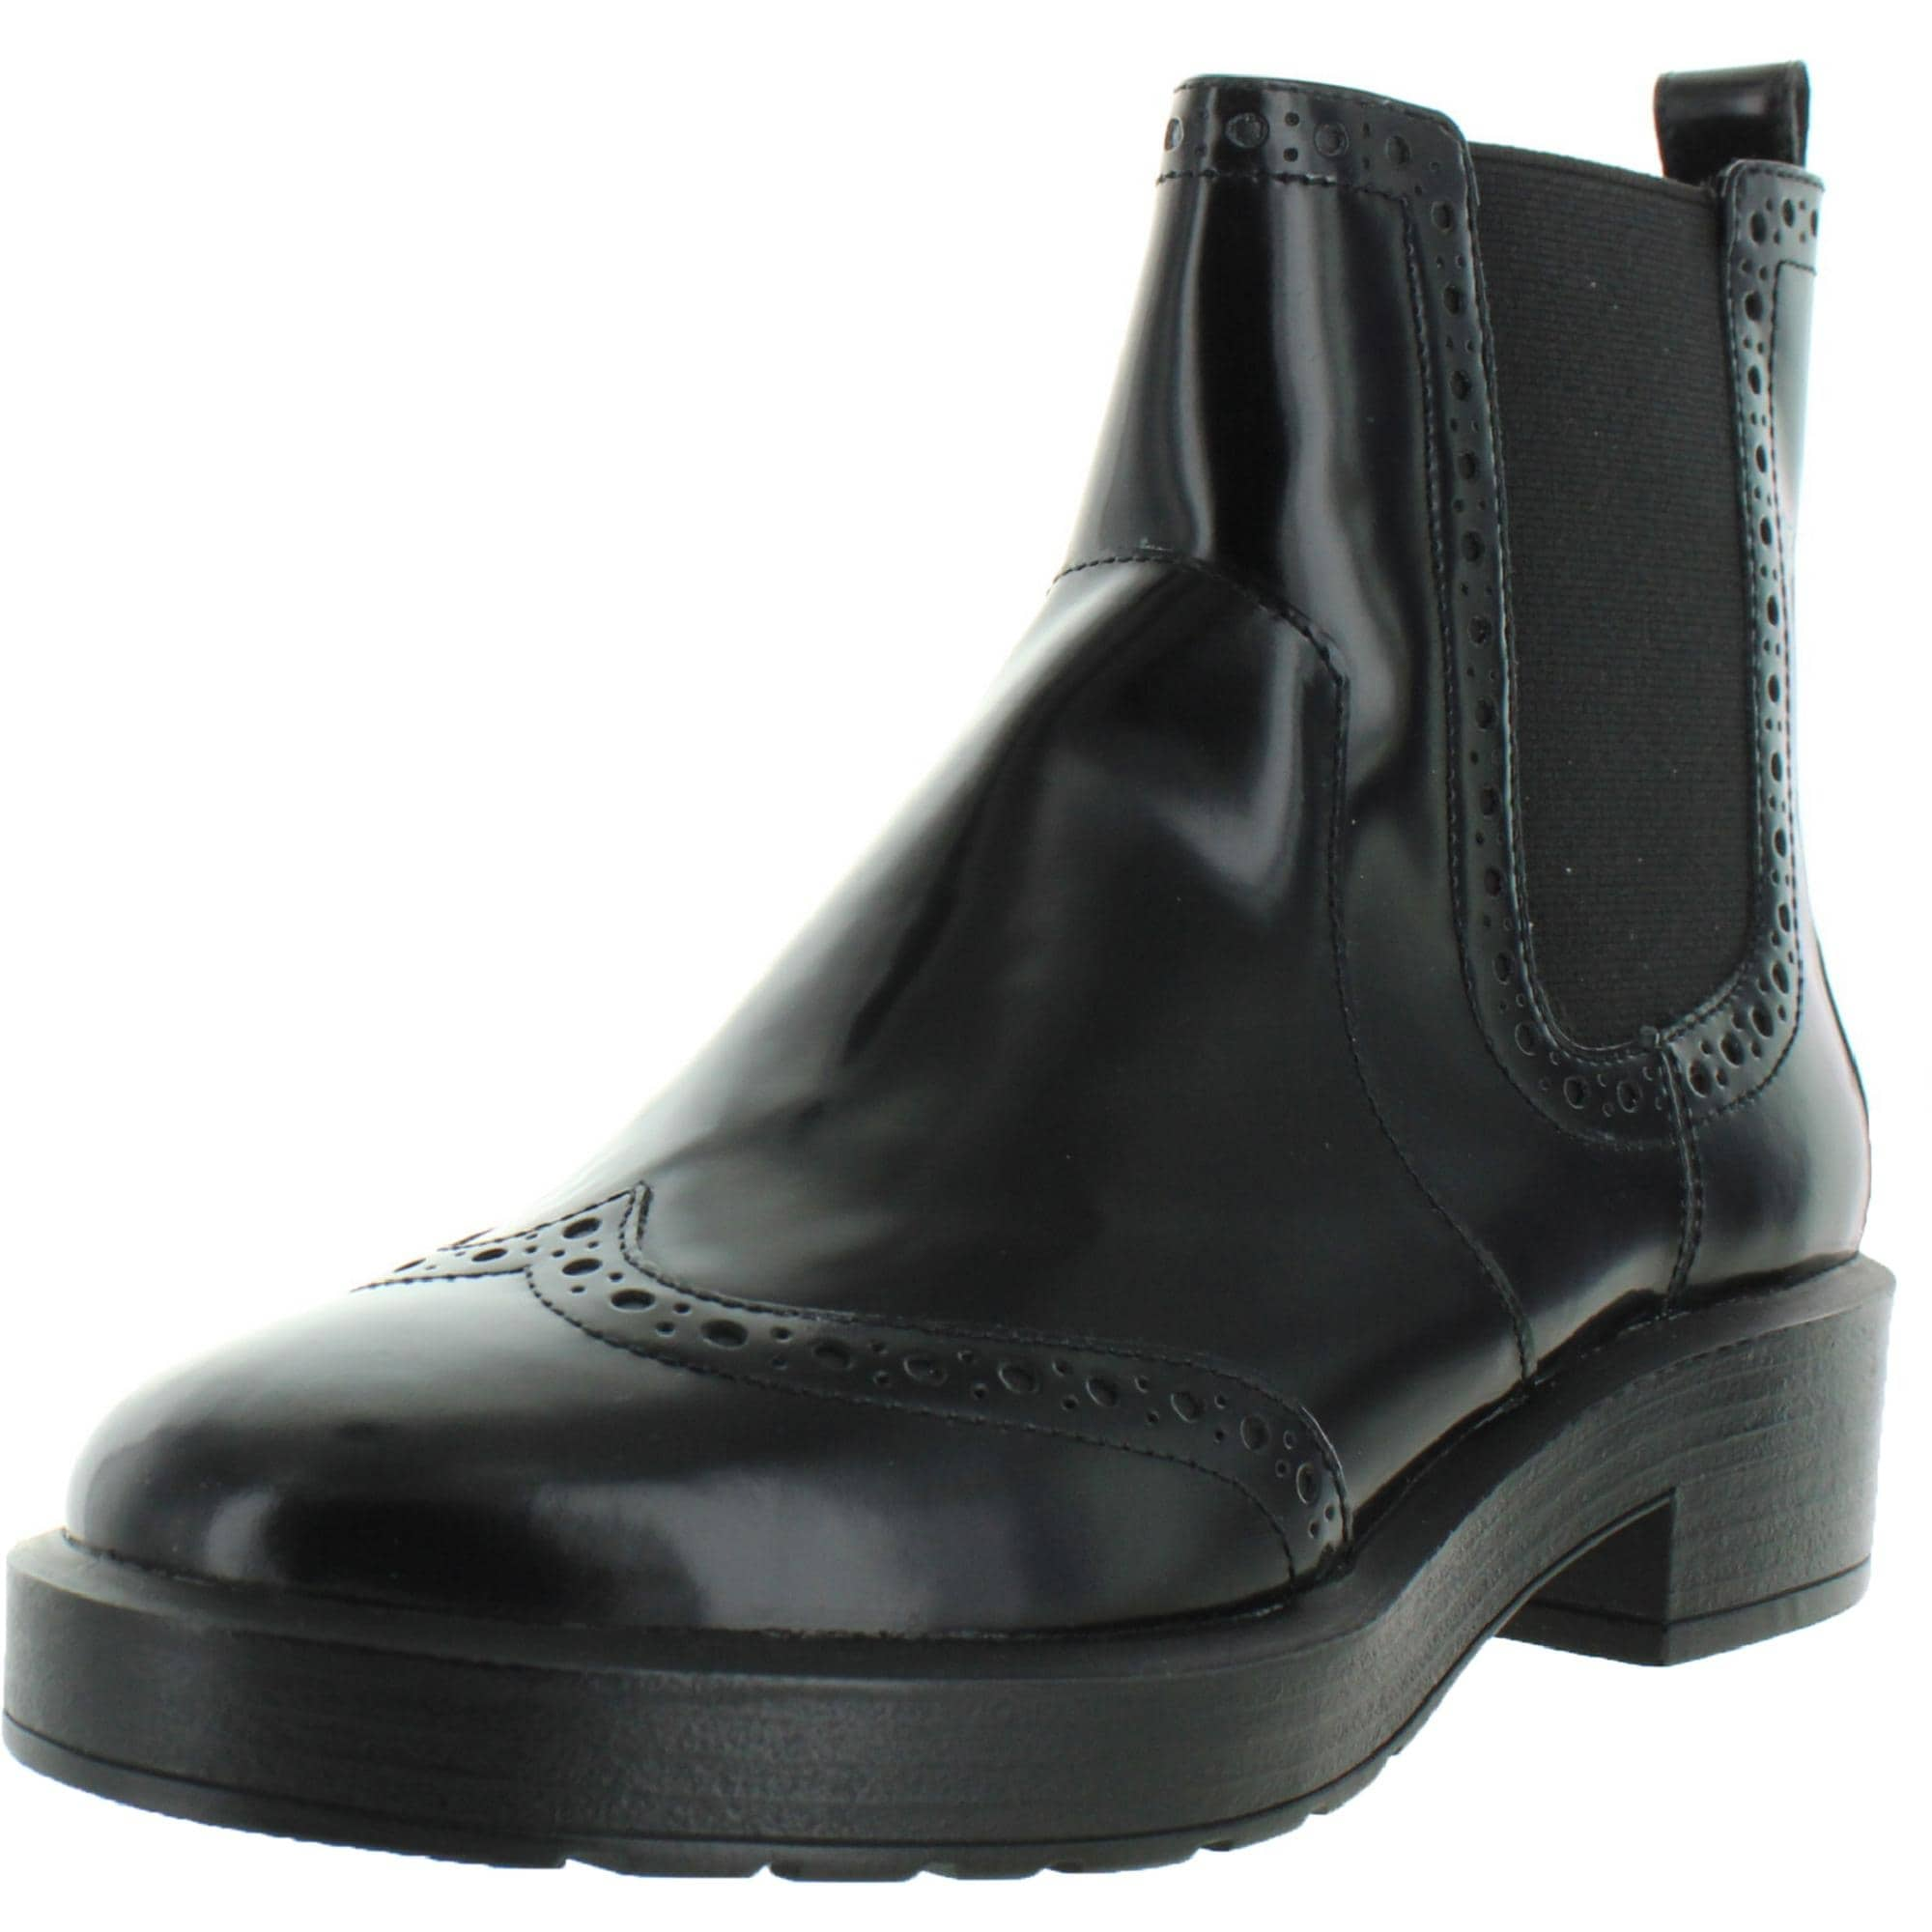 visa De nada Cuota  Geox Respira Womens Kenly Oxford Boots Patent Leather Ankle - Black -  Overstock - 32054013